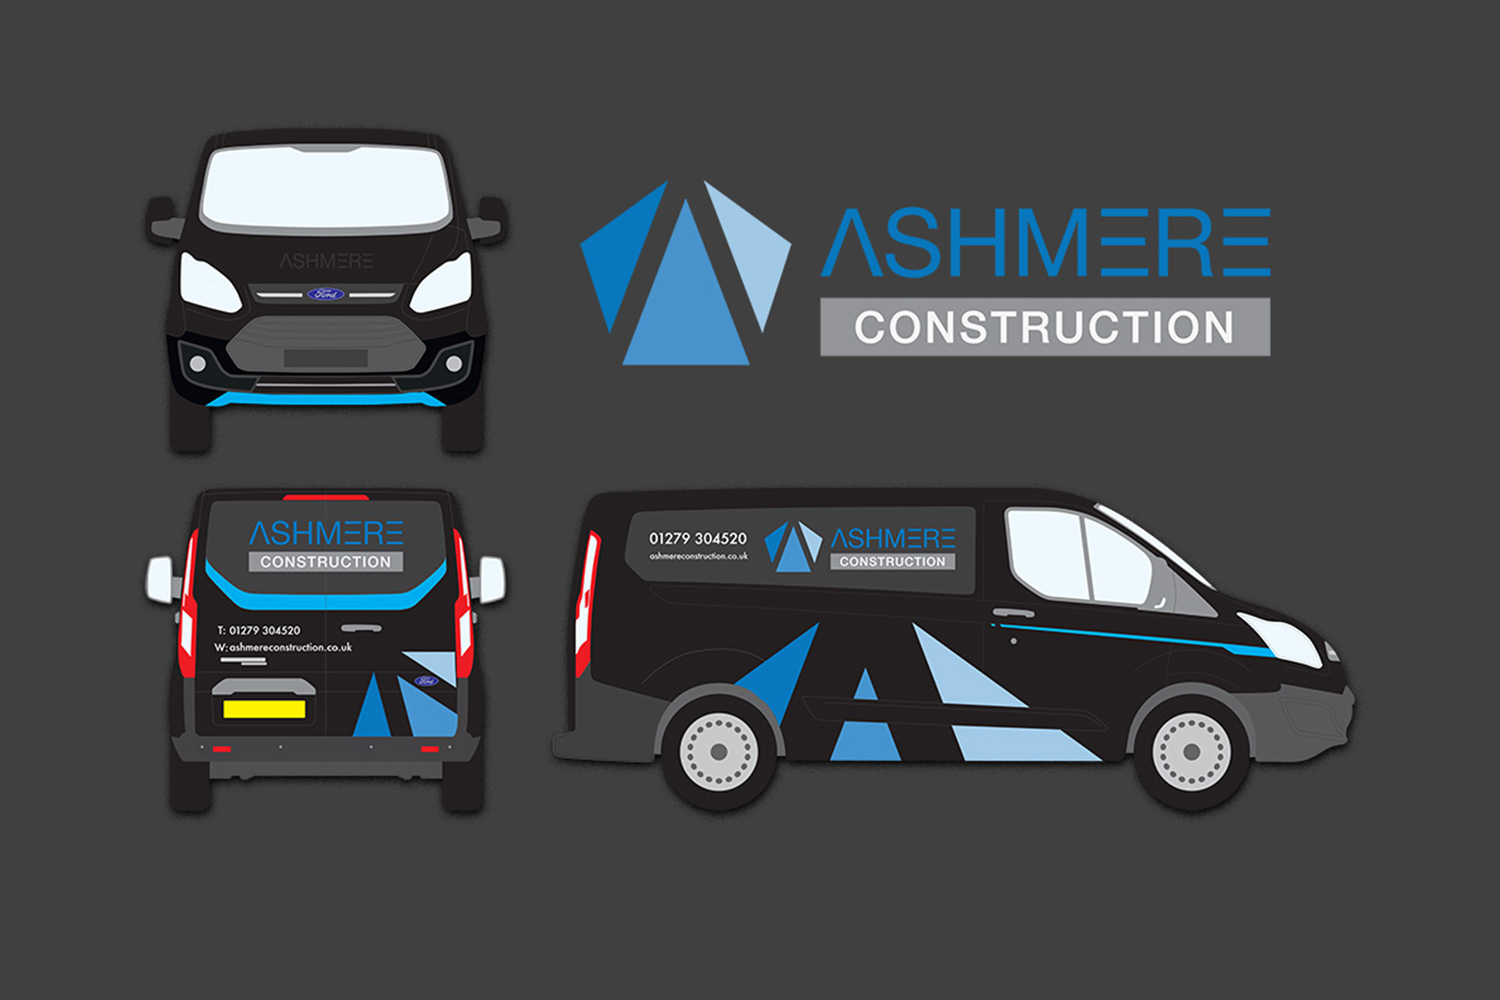 van signage for construction business